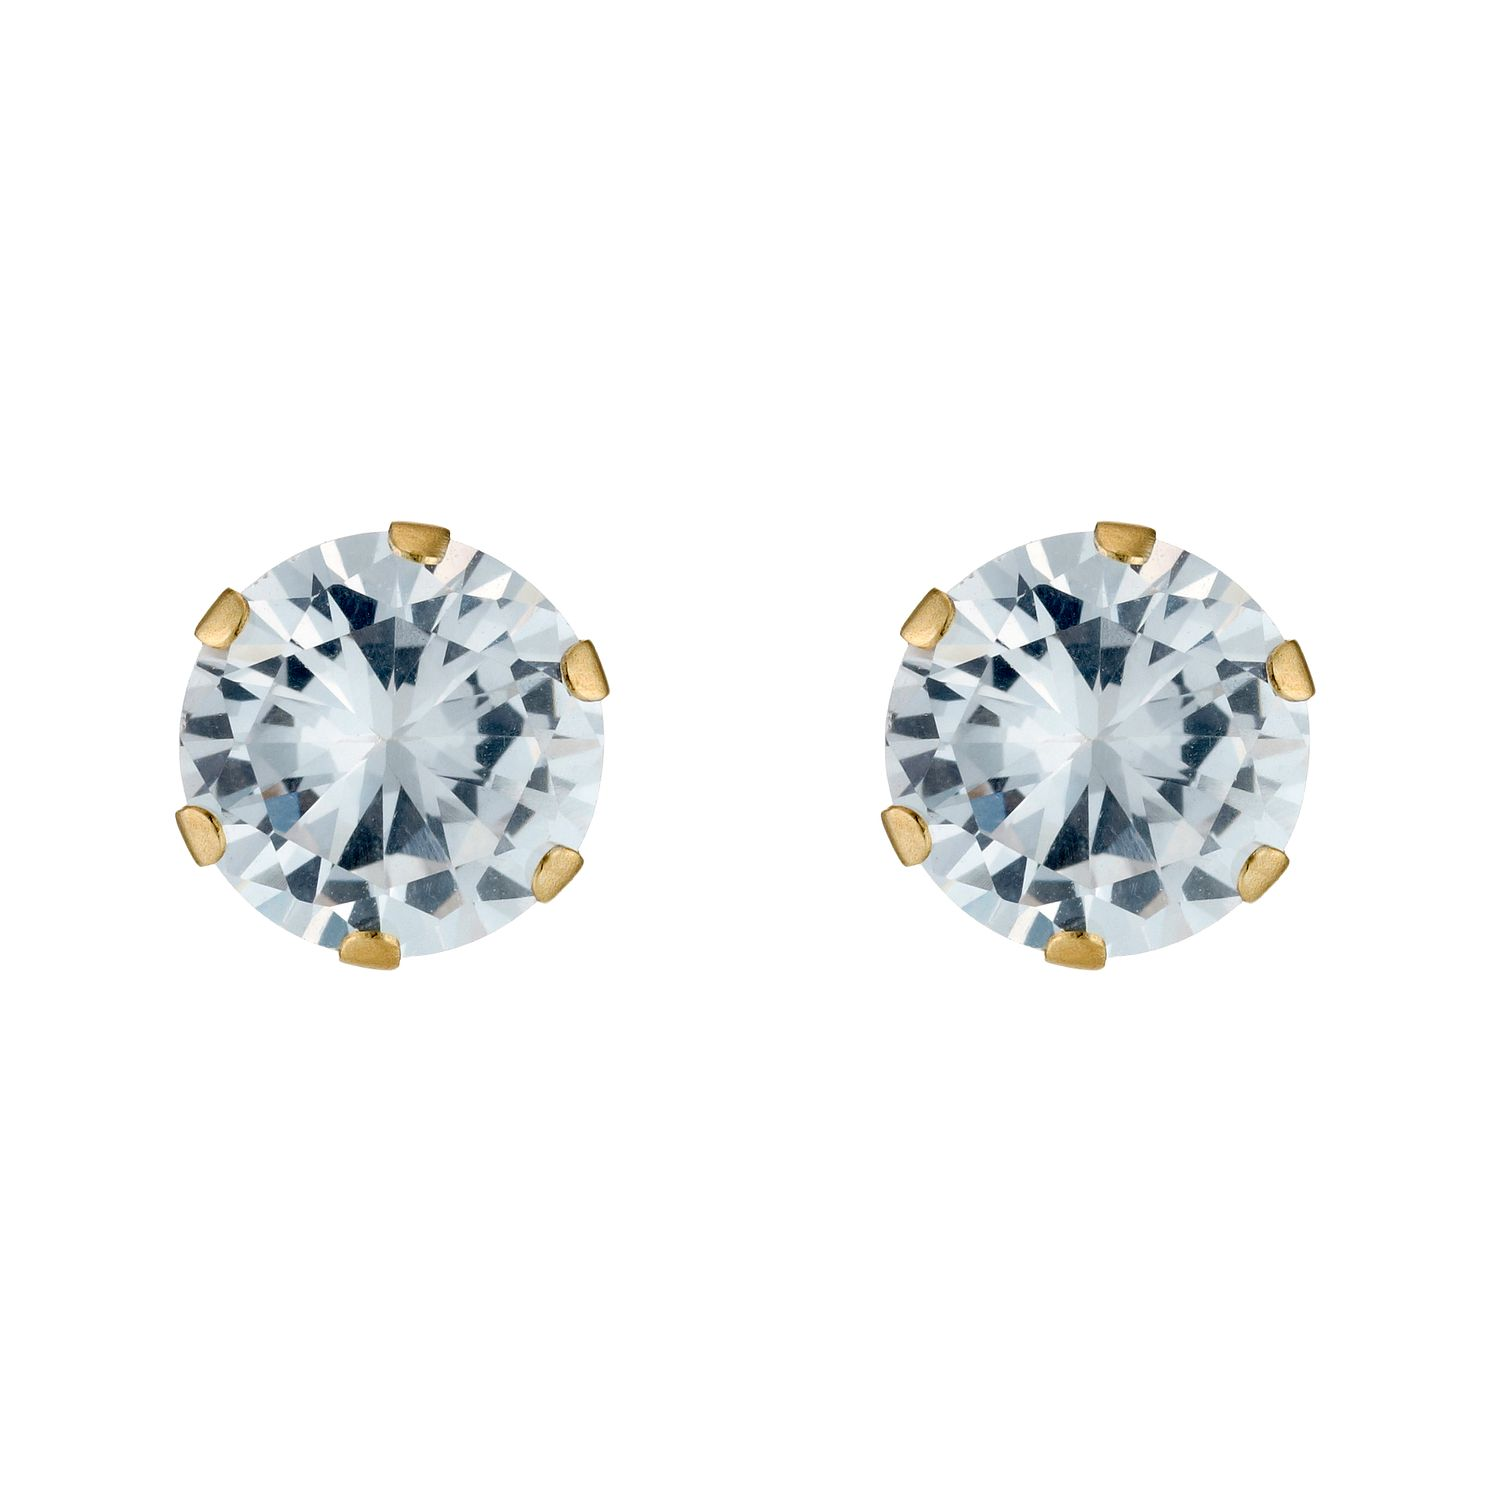 9ct Yellow Gold Cubic Zirconia 6mm Stud Earrings - Product number 3548848